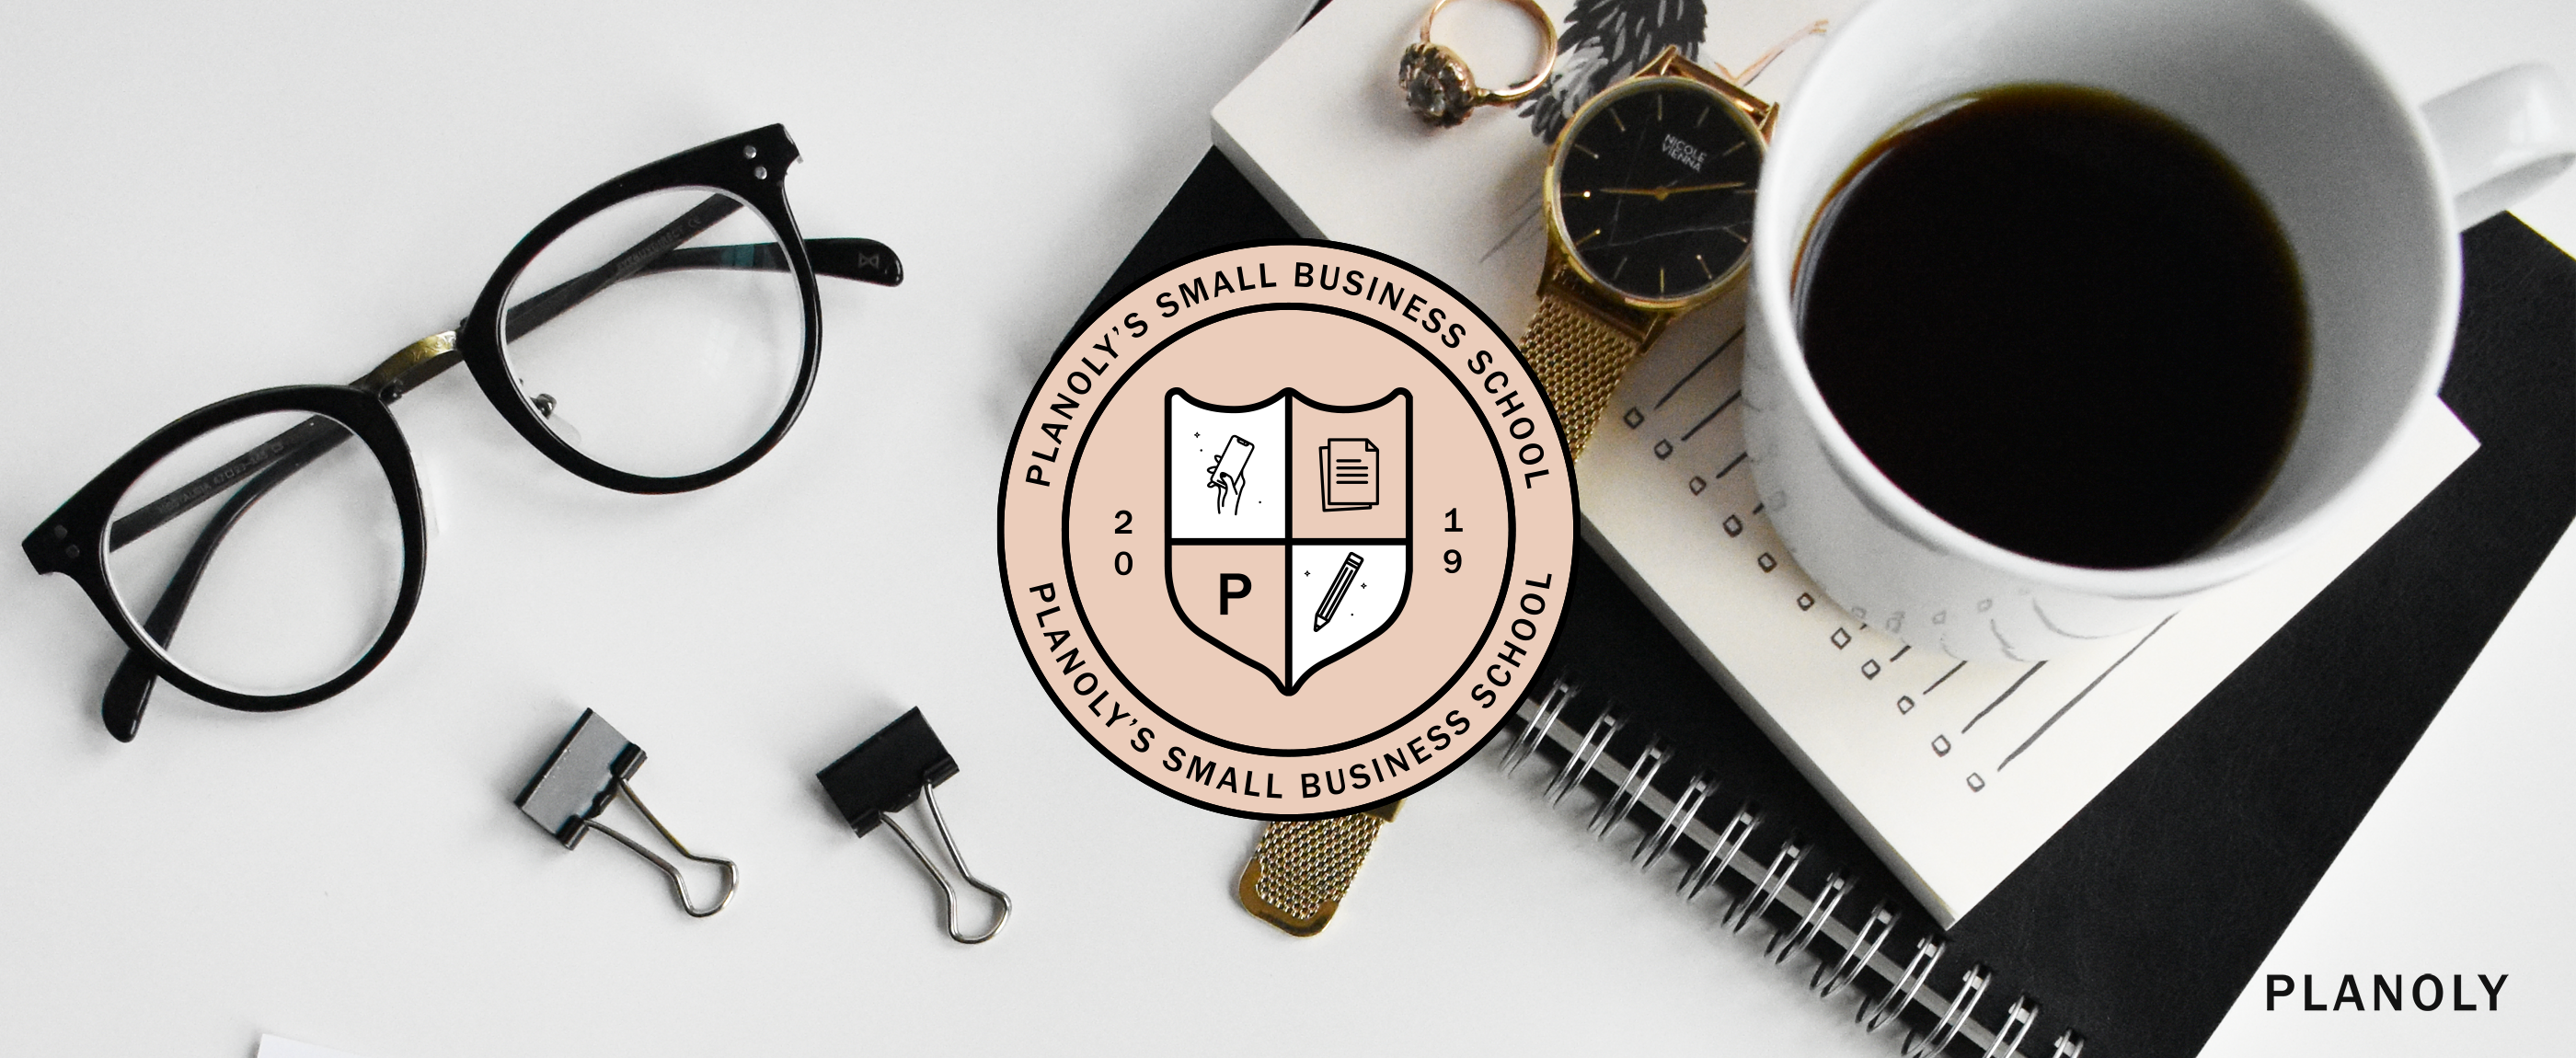 Planoly's Small Business School: Defining Your Brand